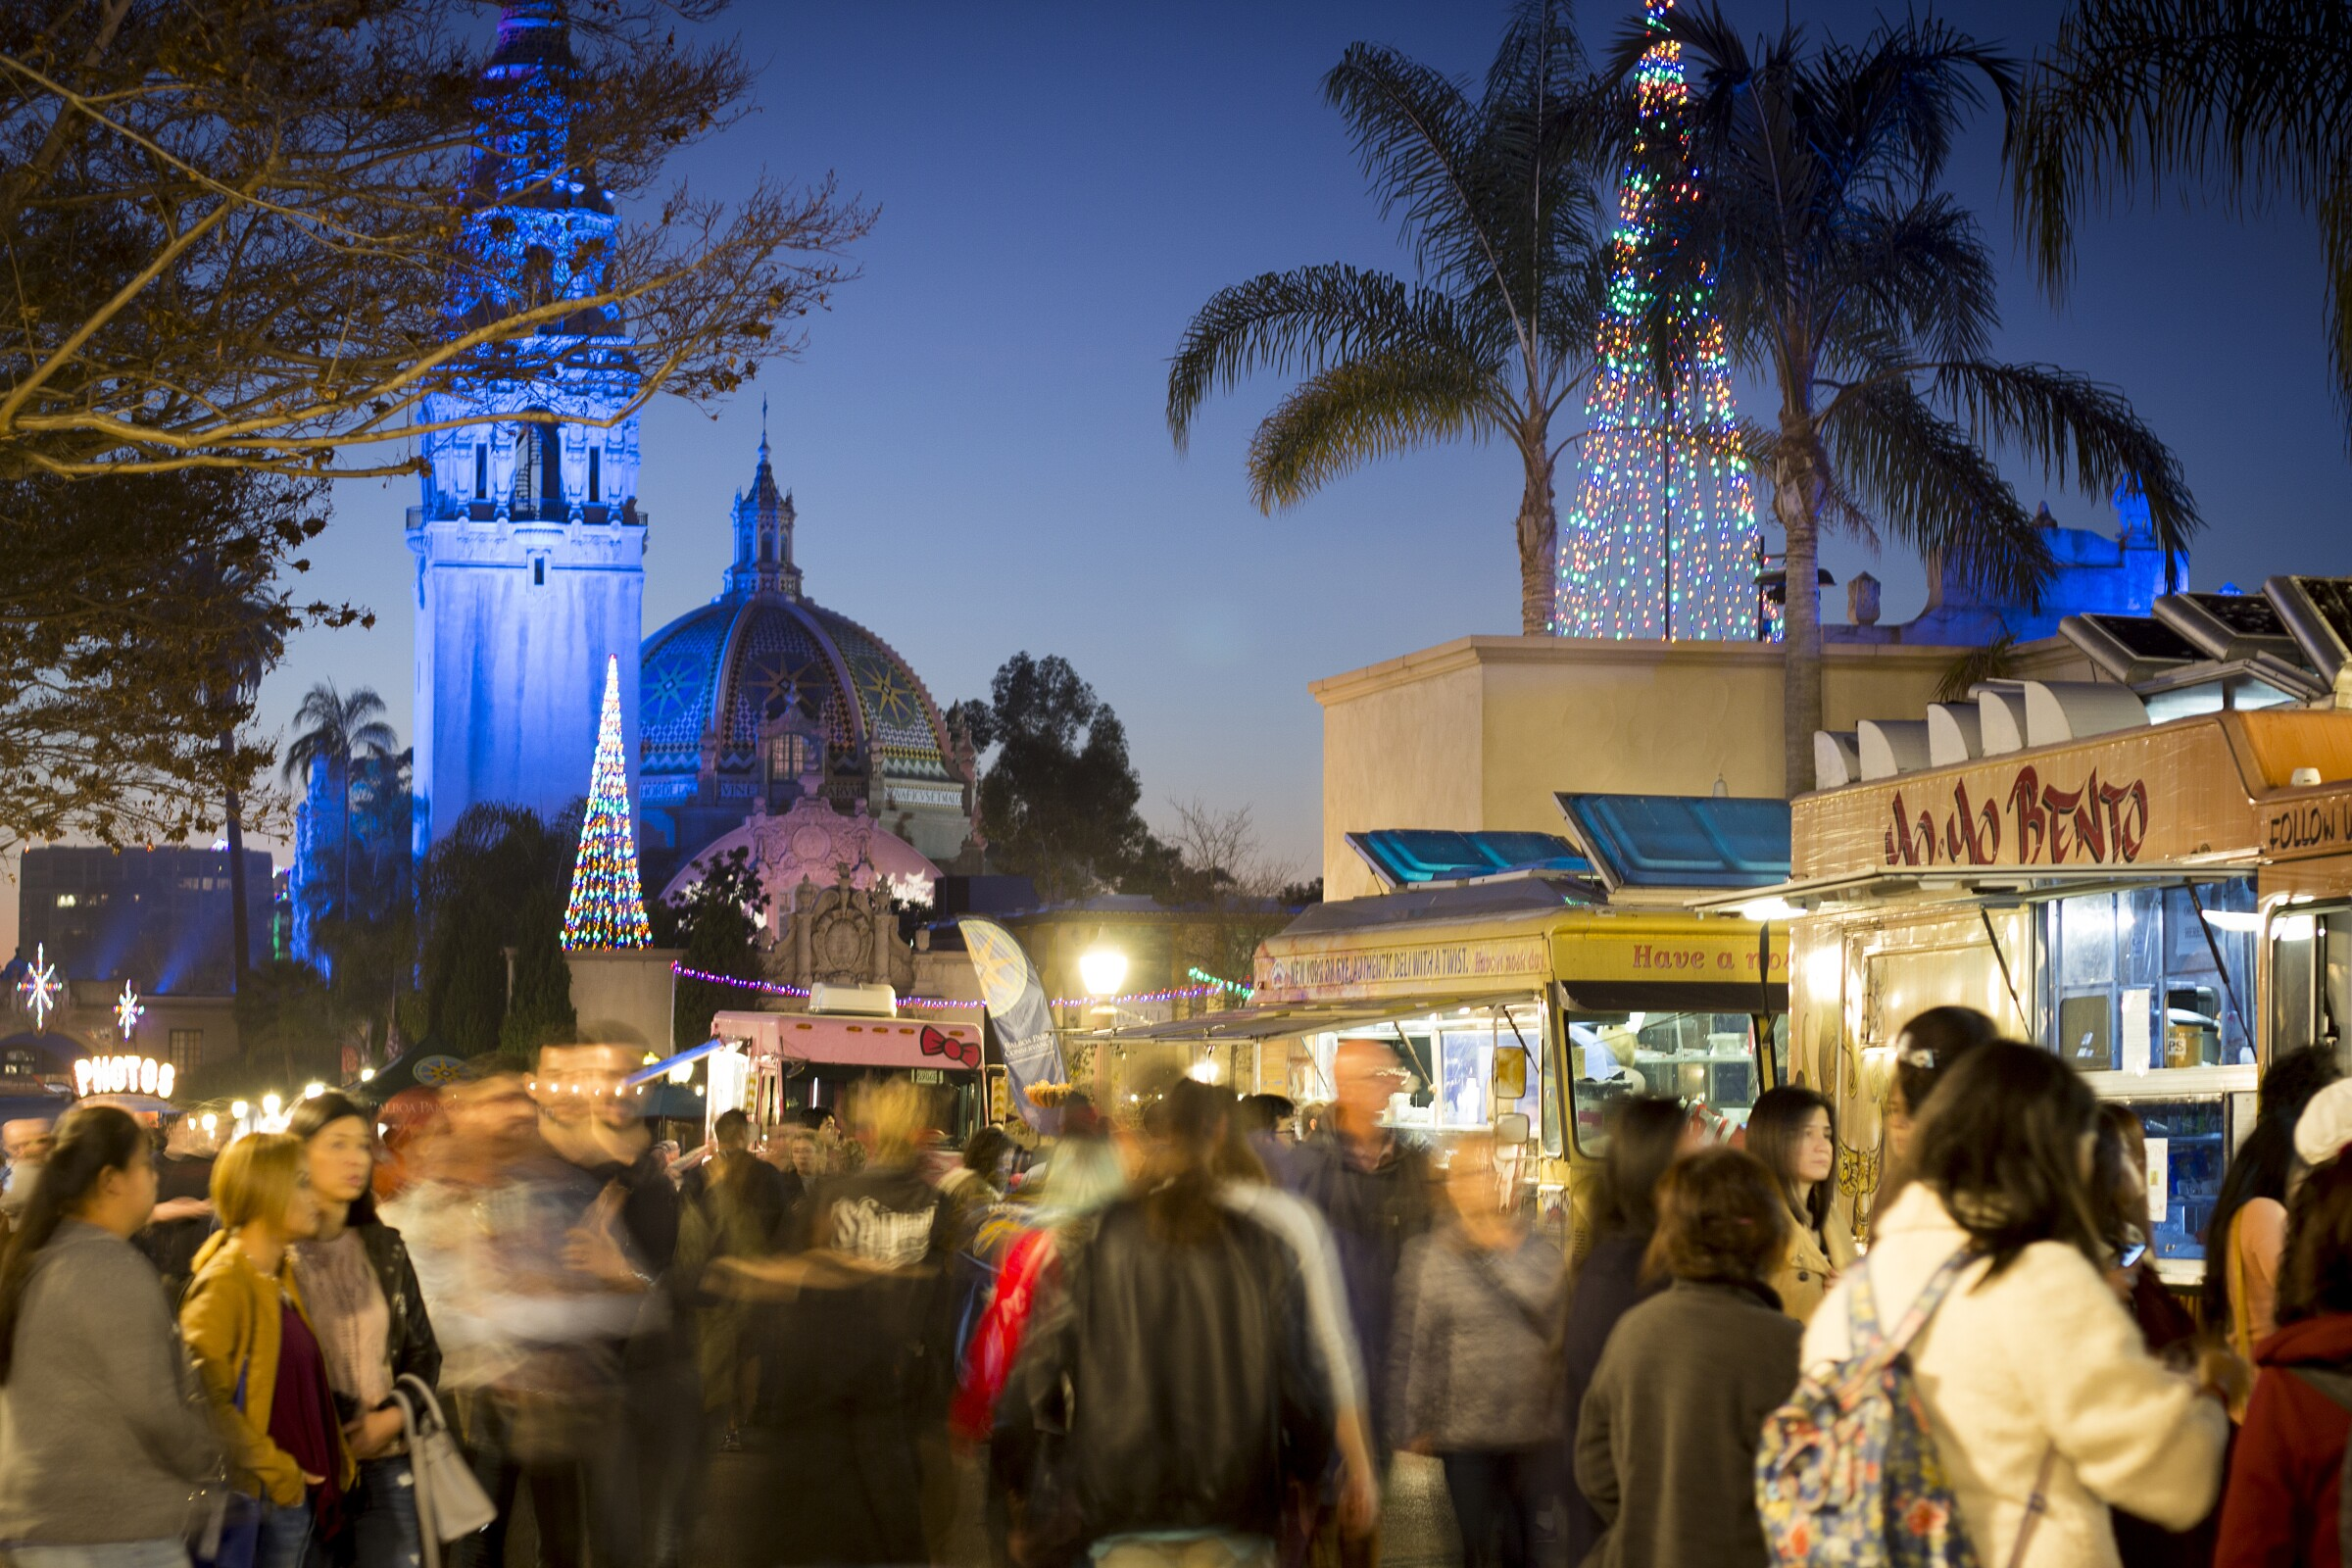 Balboa Park Holiday Food Truck Festival